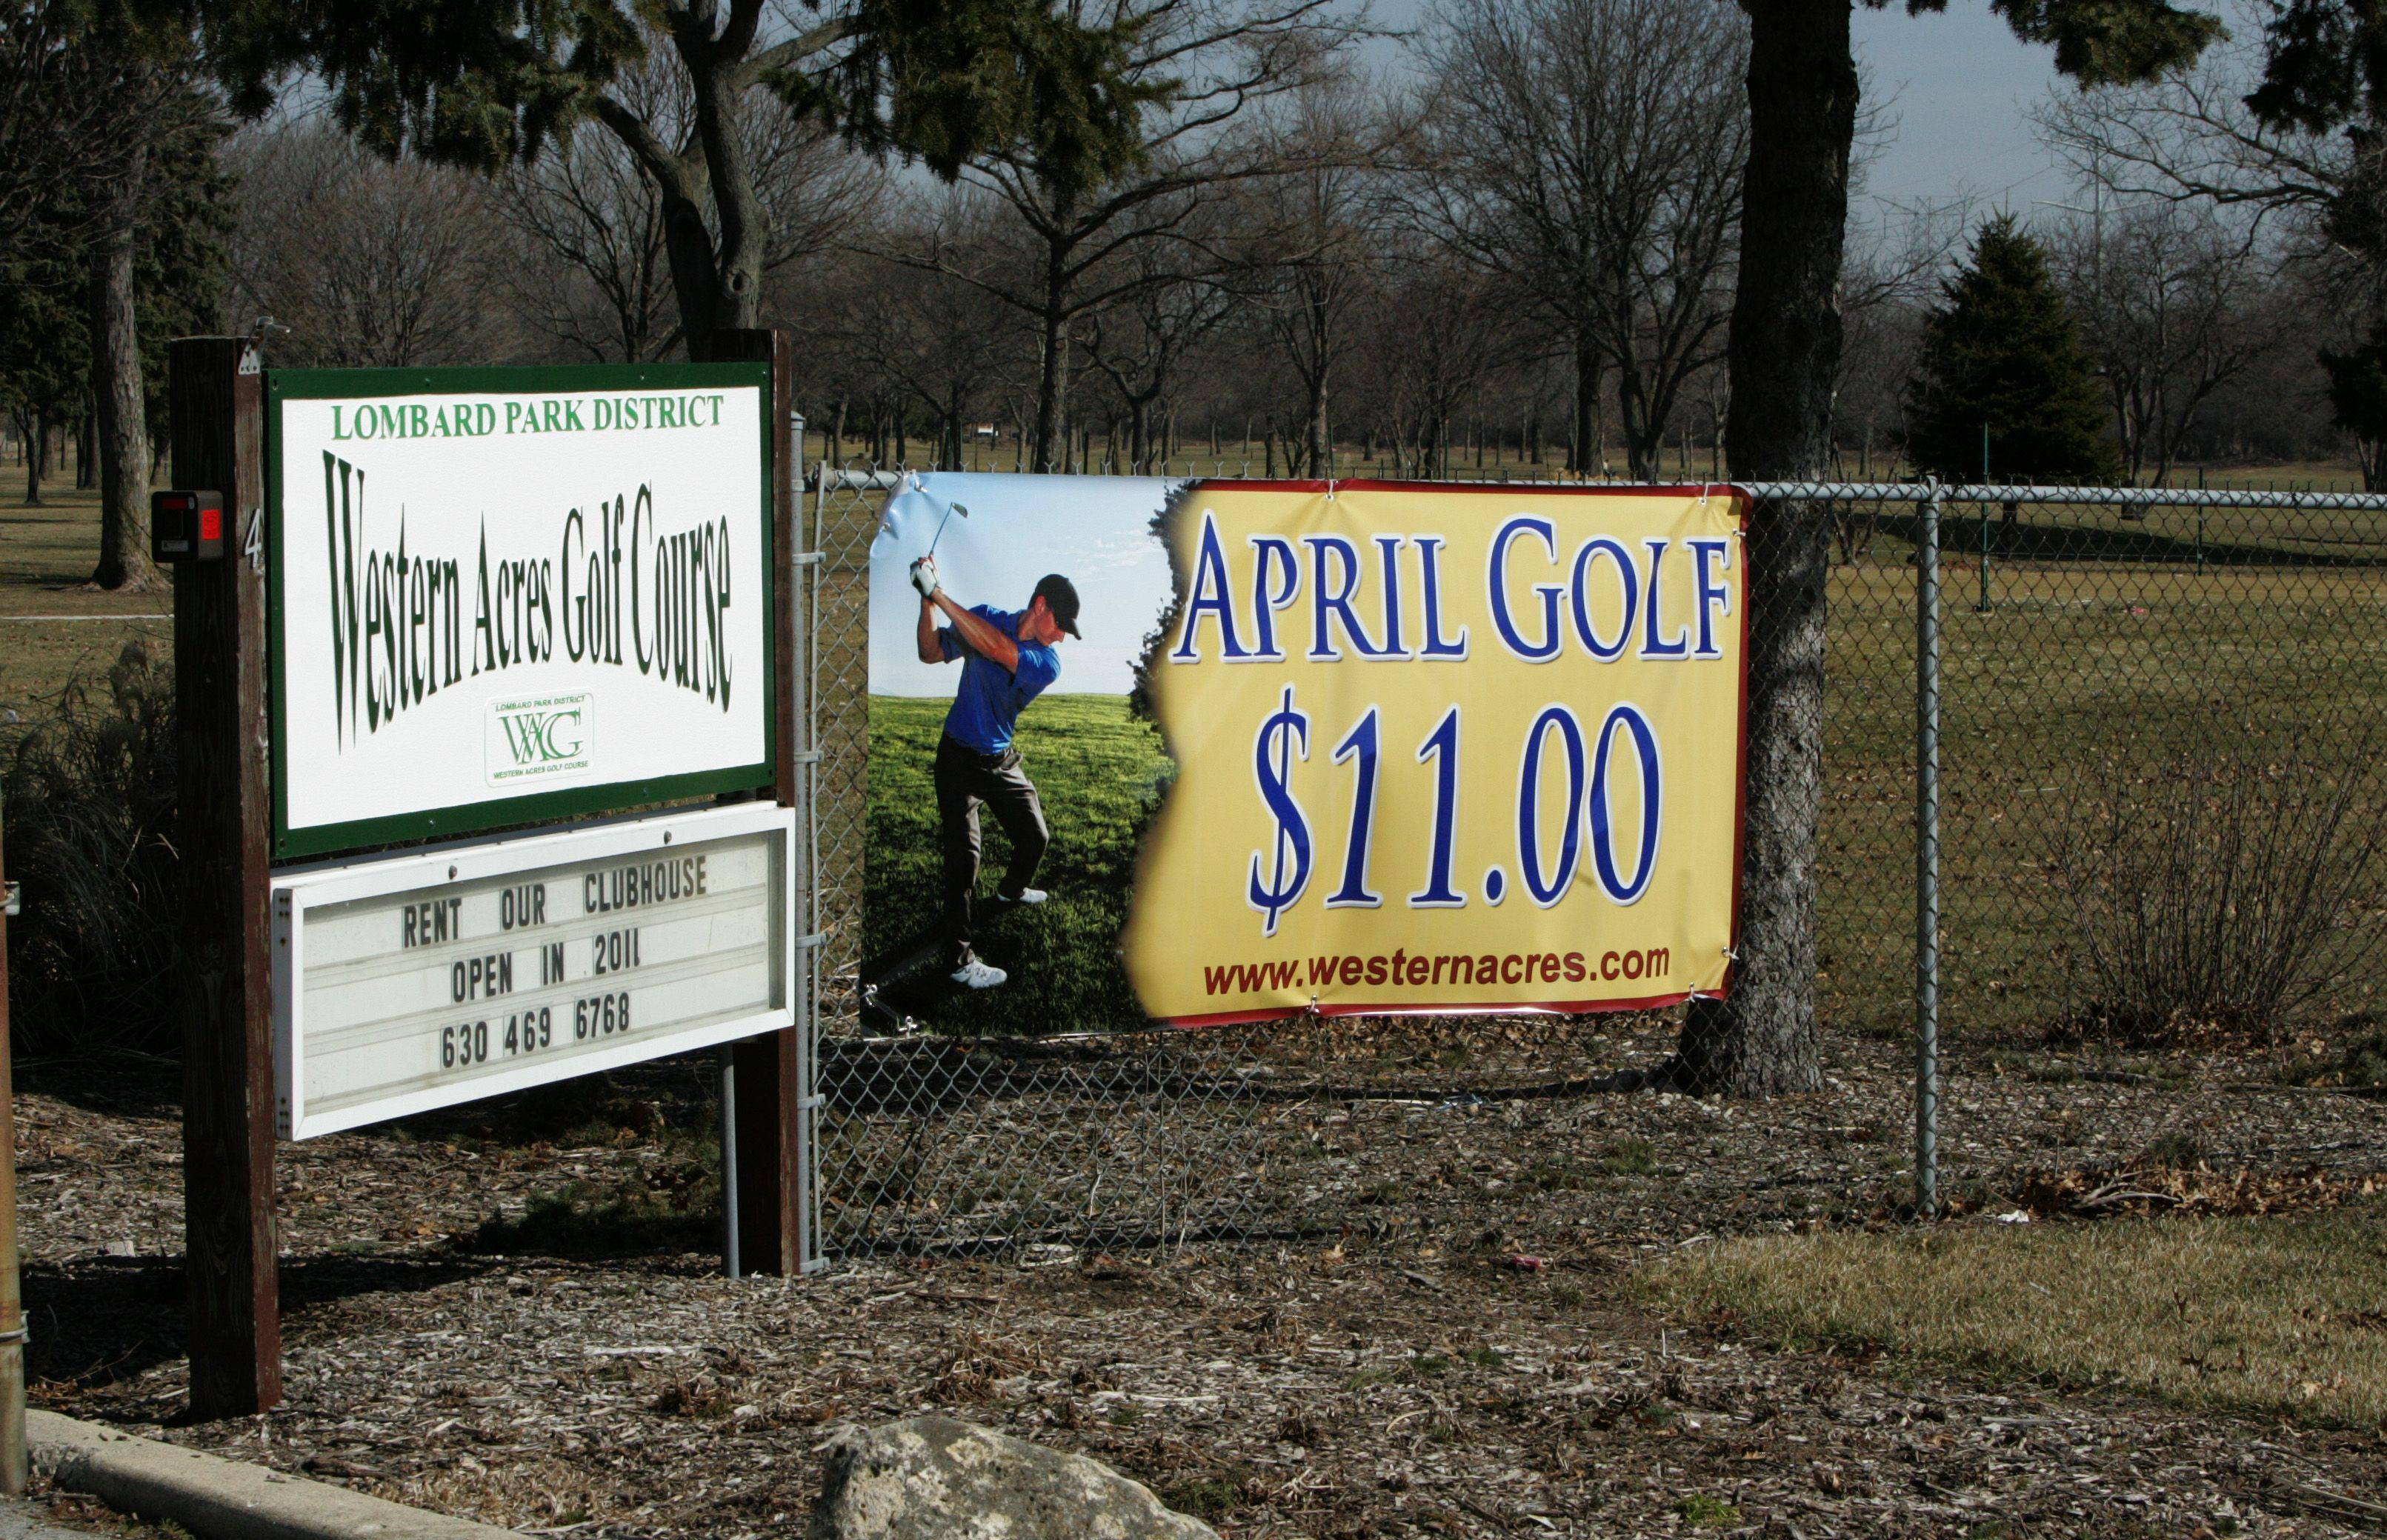 Several Lombard park board candidates are hopeful discounted green fees in April at Western Acres Golf Course will attract more golfers and help the course become profitable.